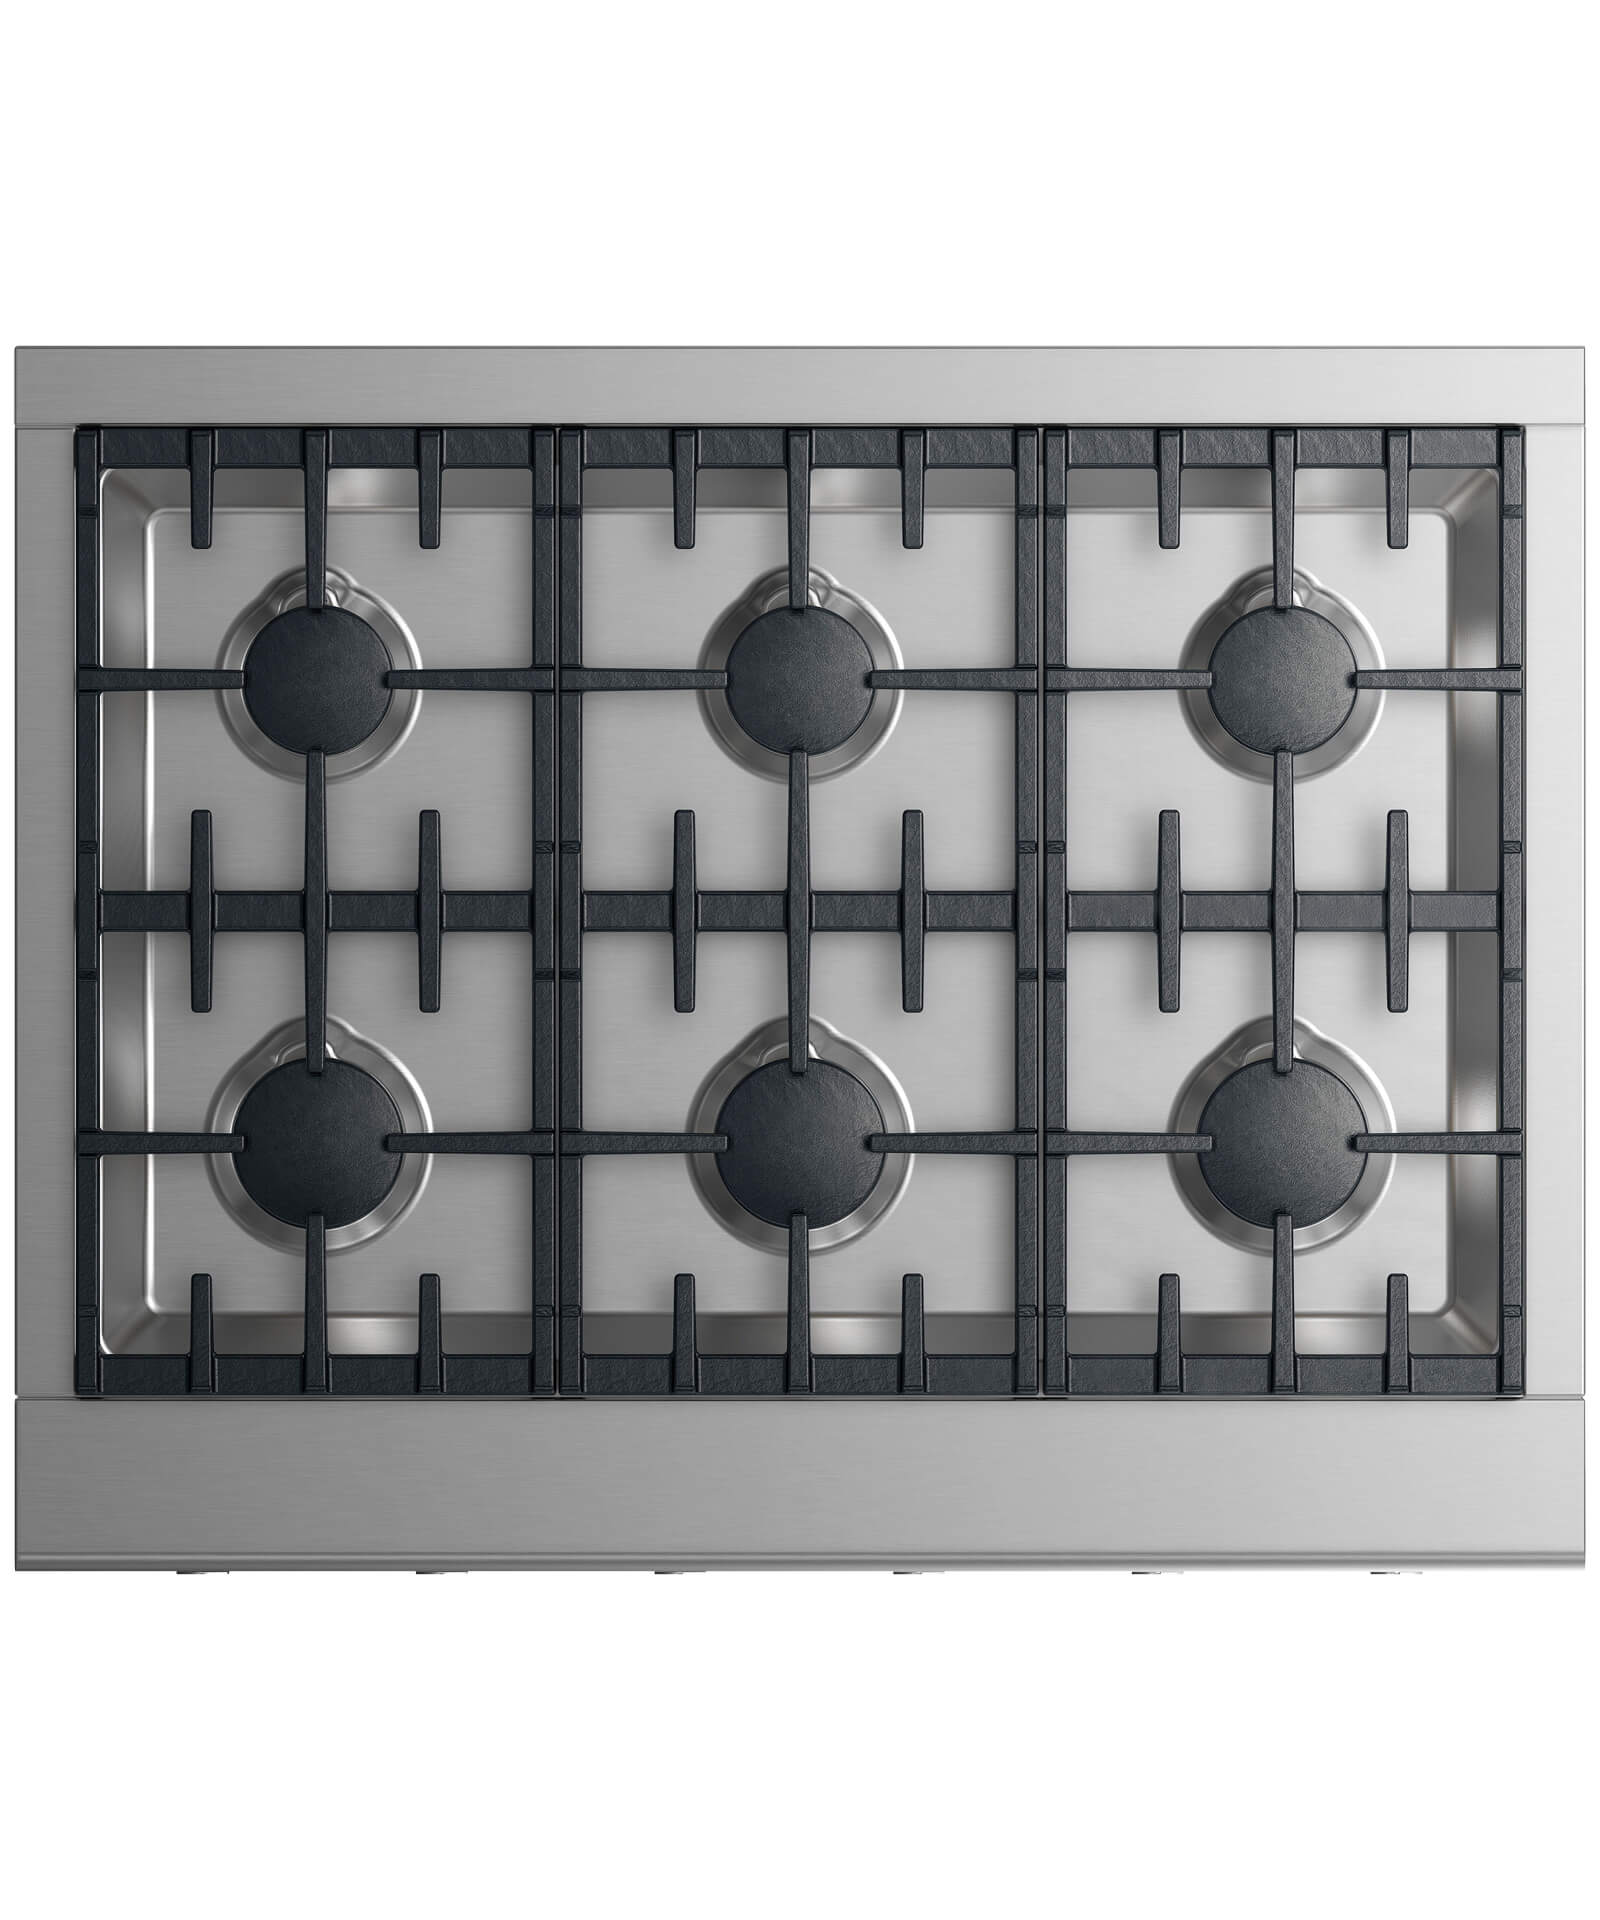 "CPV2-366-N_N - 36"" Professional Cooktop: 6 burners - 71388"